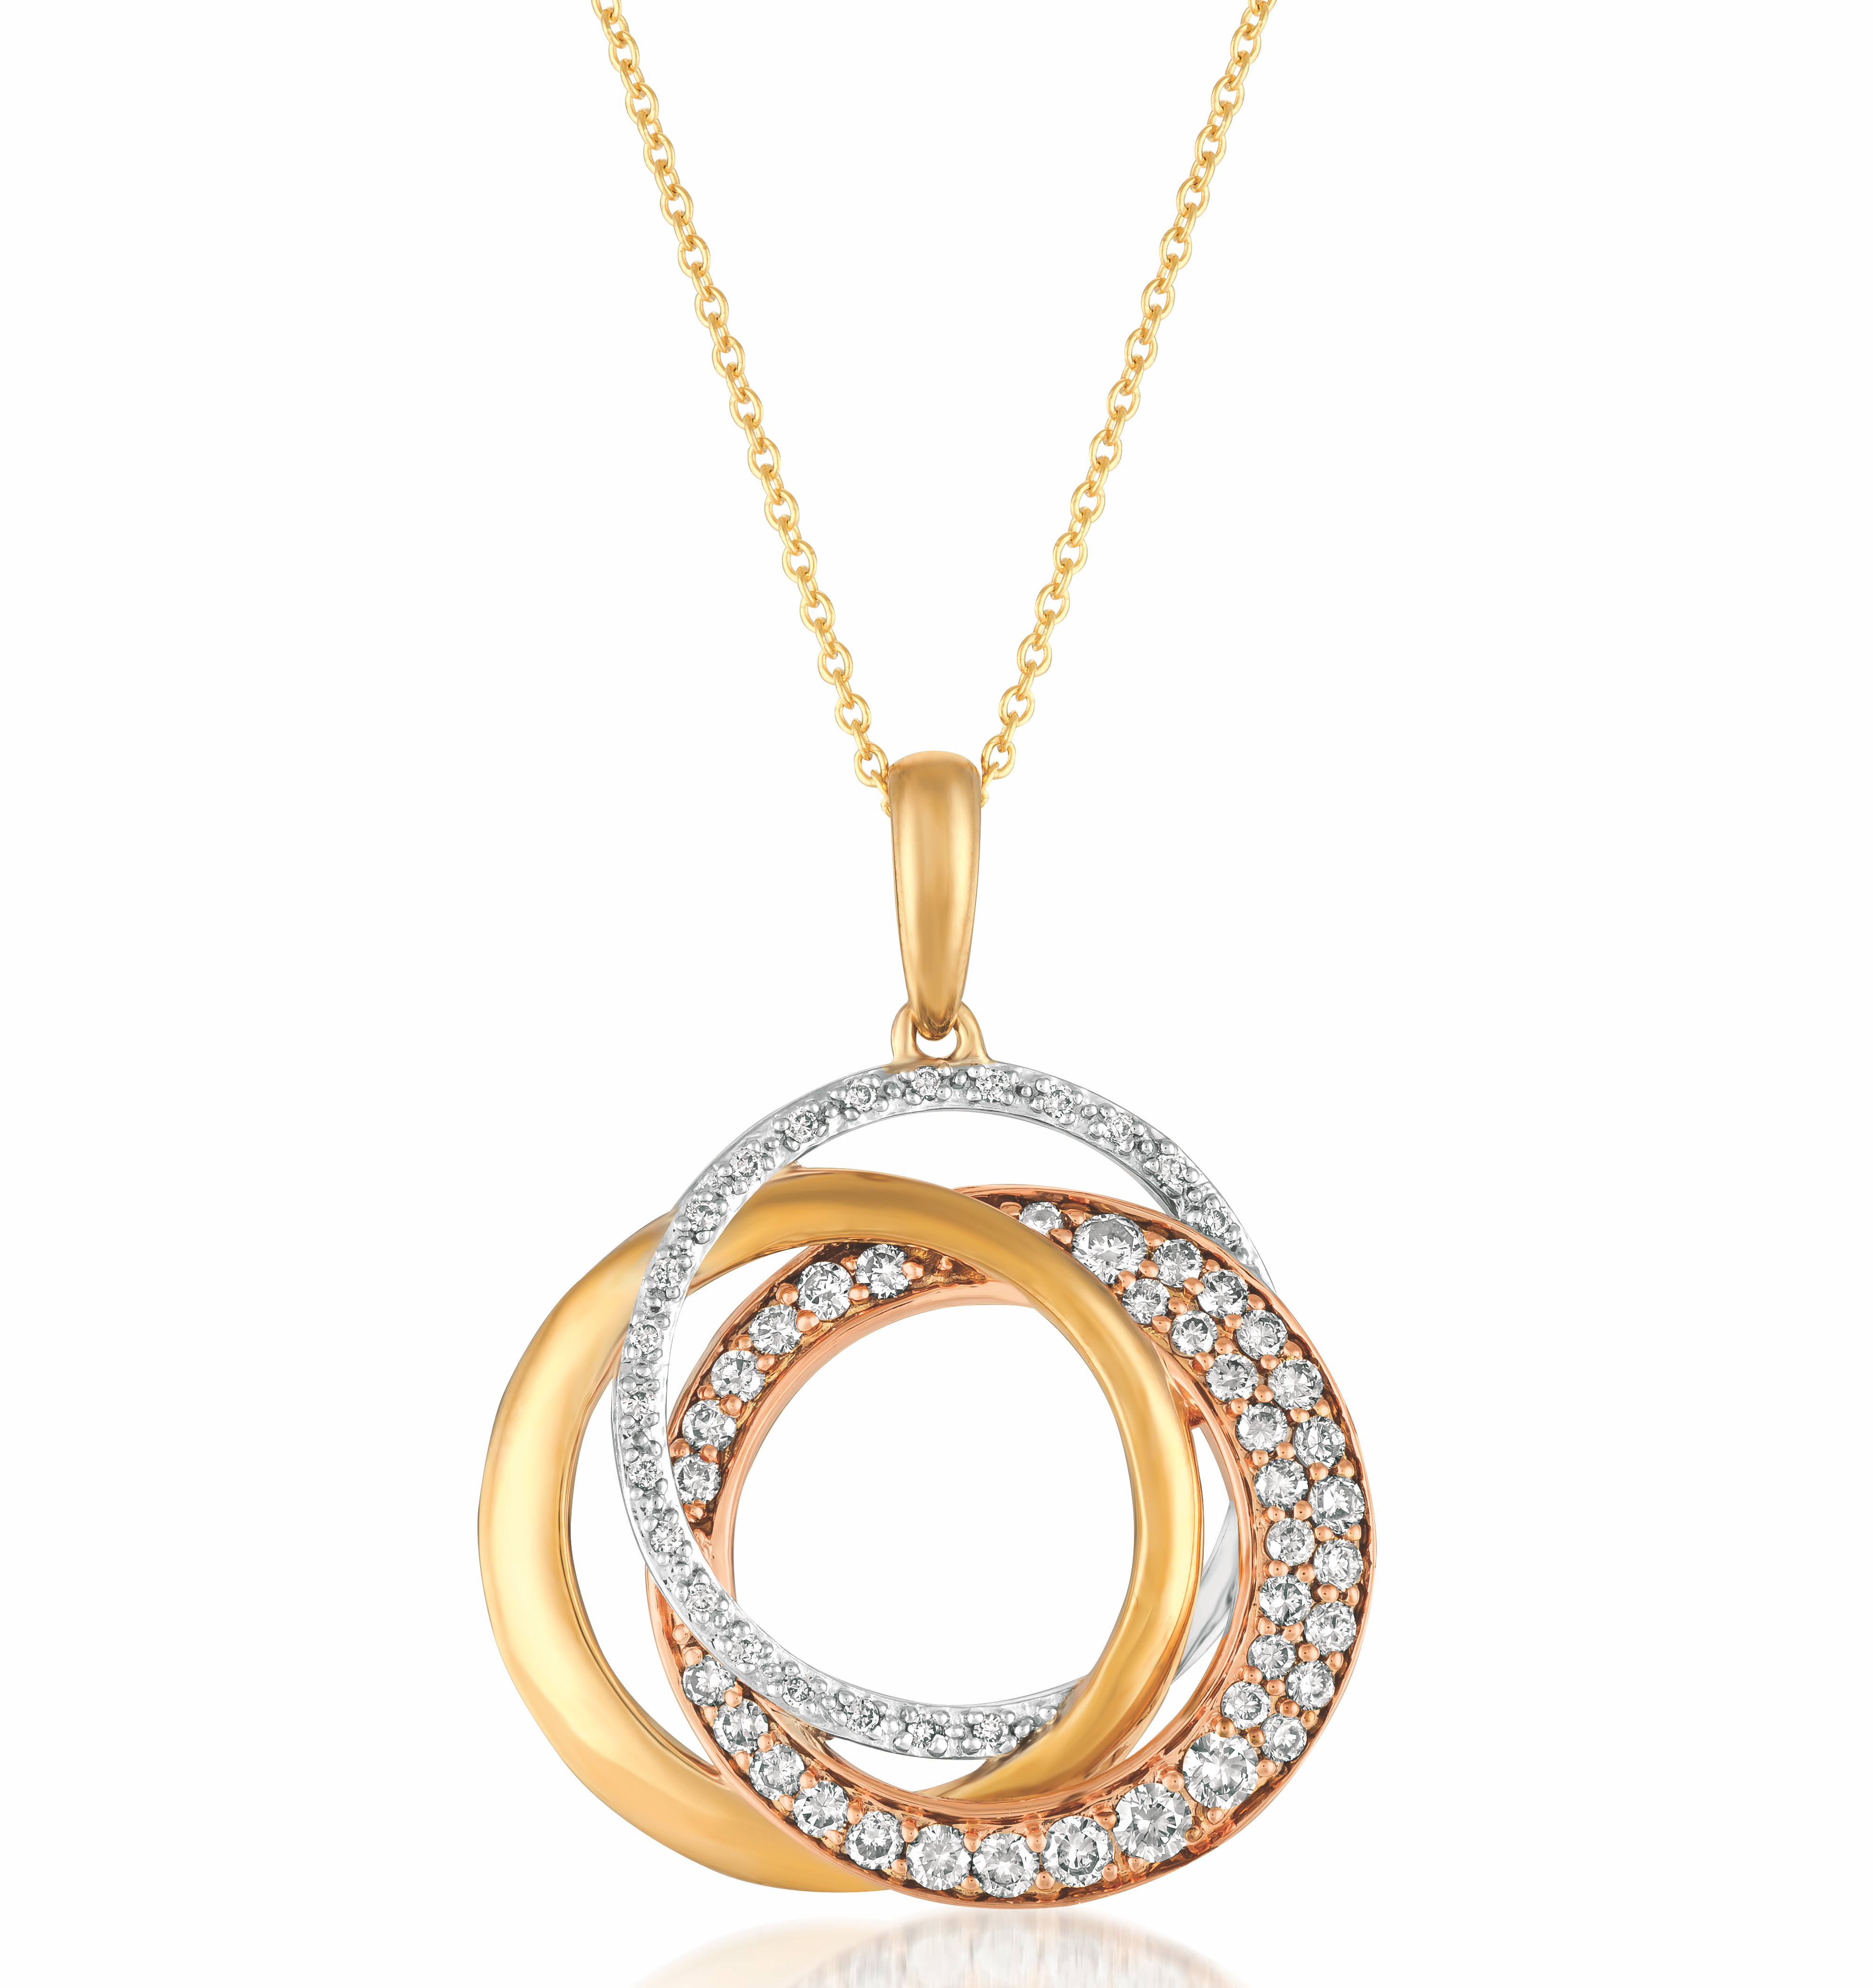 Le Vian Starboard pendant | JCK On Your Market